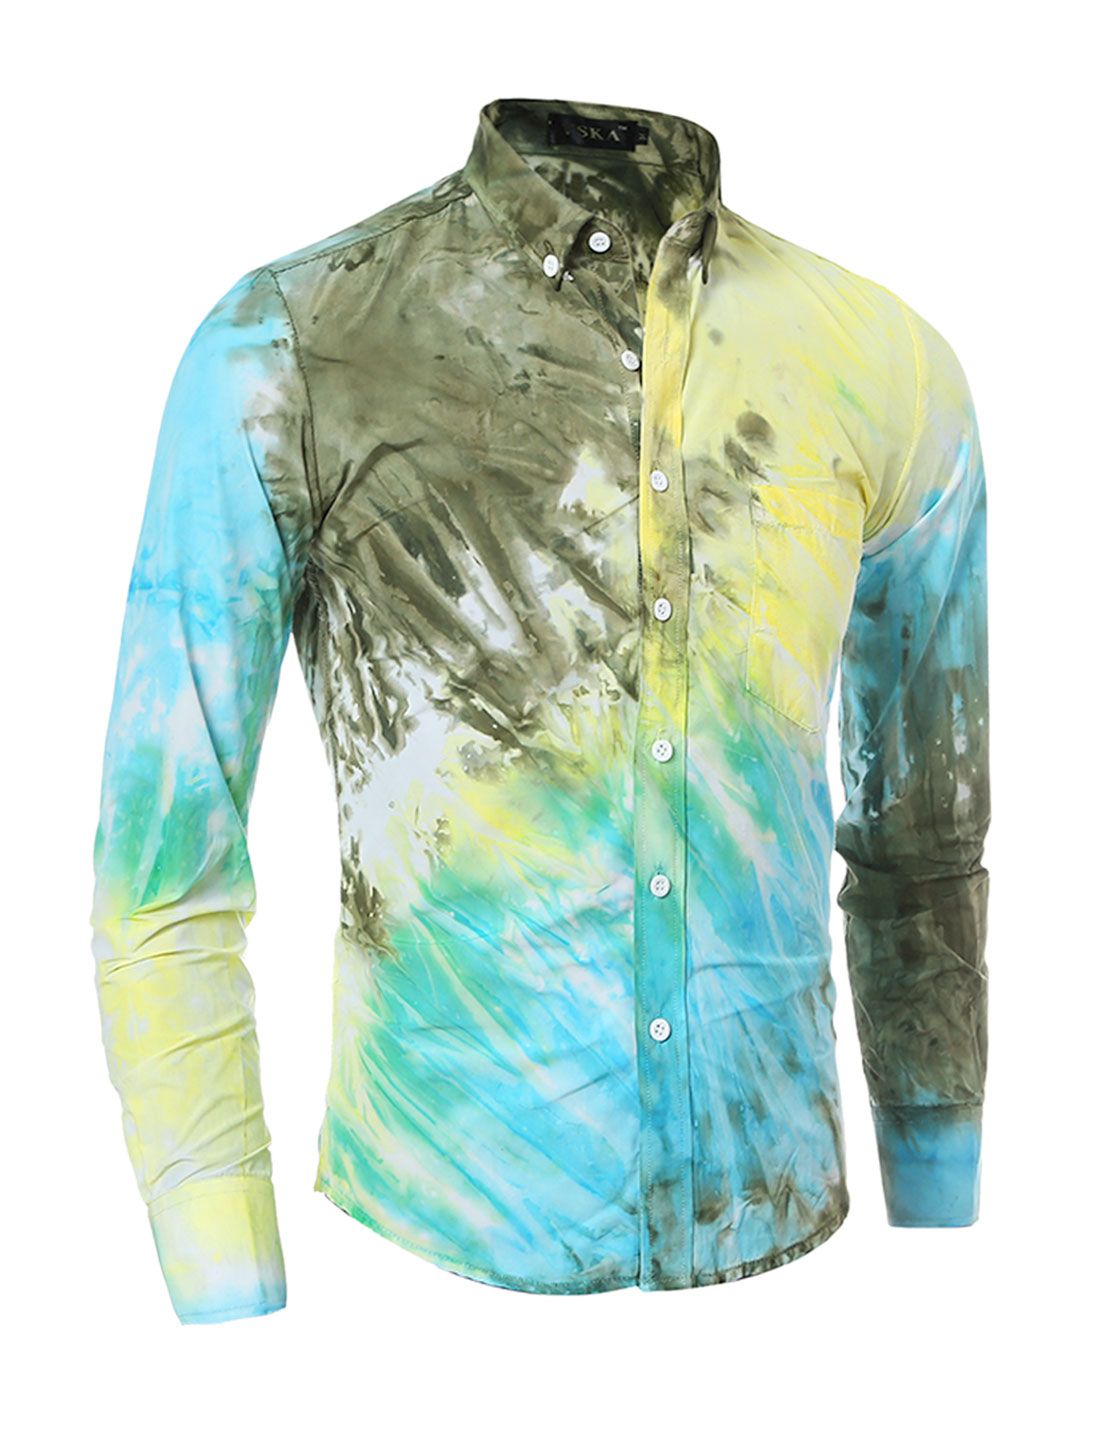 Man Chest Pocket Tie-Dye Slim Fit Buttoned Shirt Green S